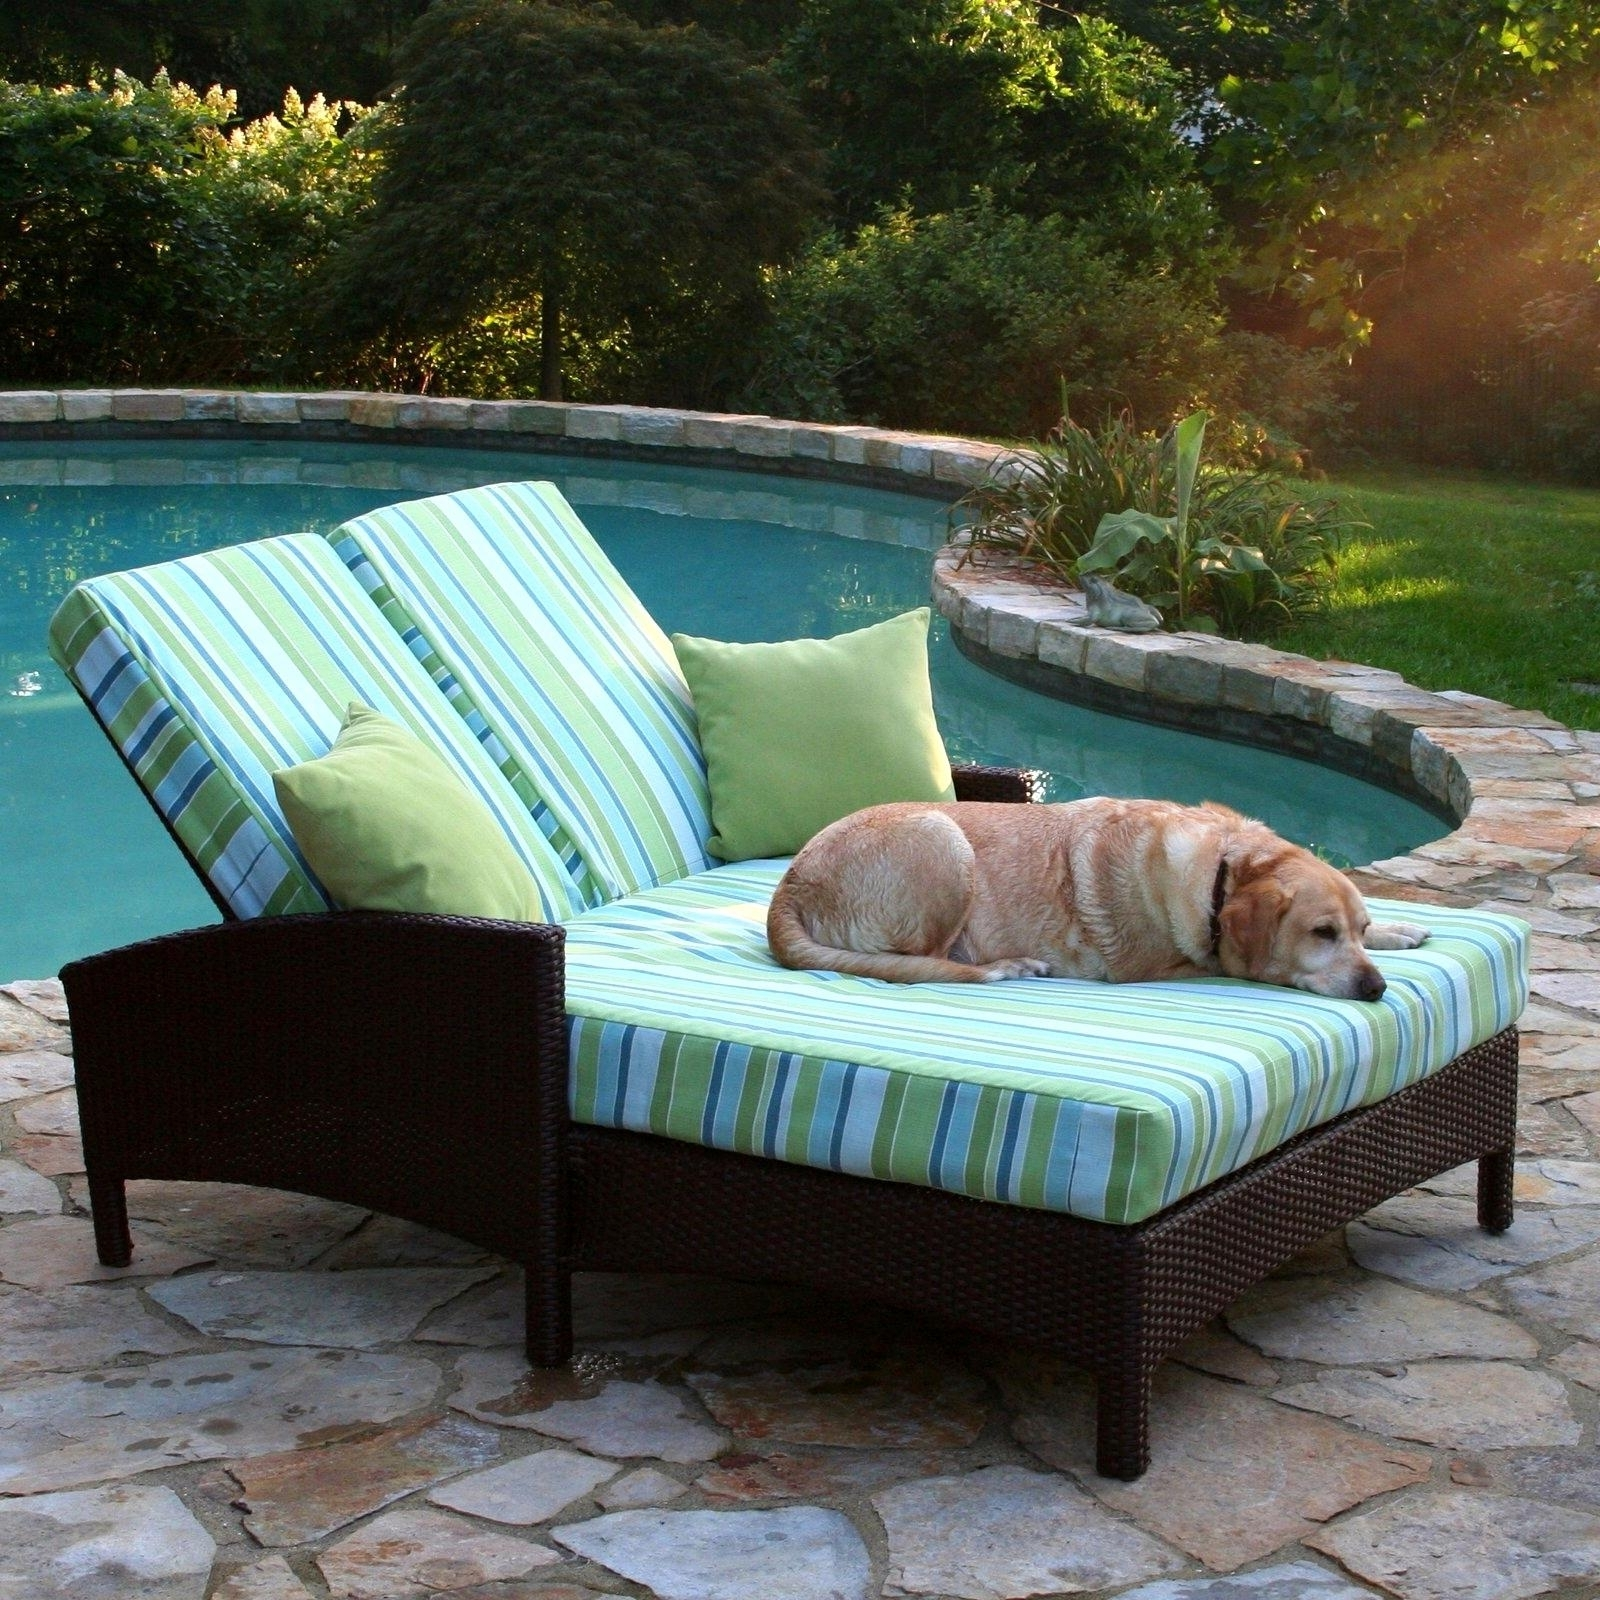 Favorite Startling Pool Outdoor Furniture Chaise Lounge Ideas Ture Ideas Regarding Comfy Chaise Lounges (View 15 of 15)